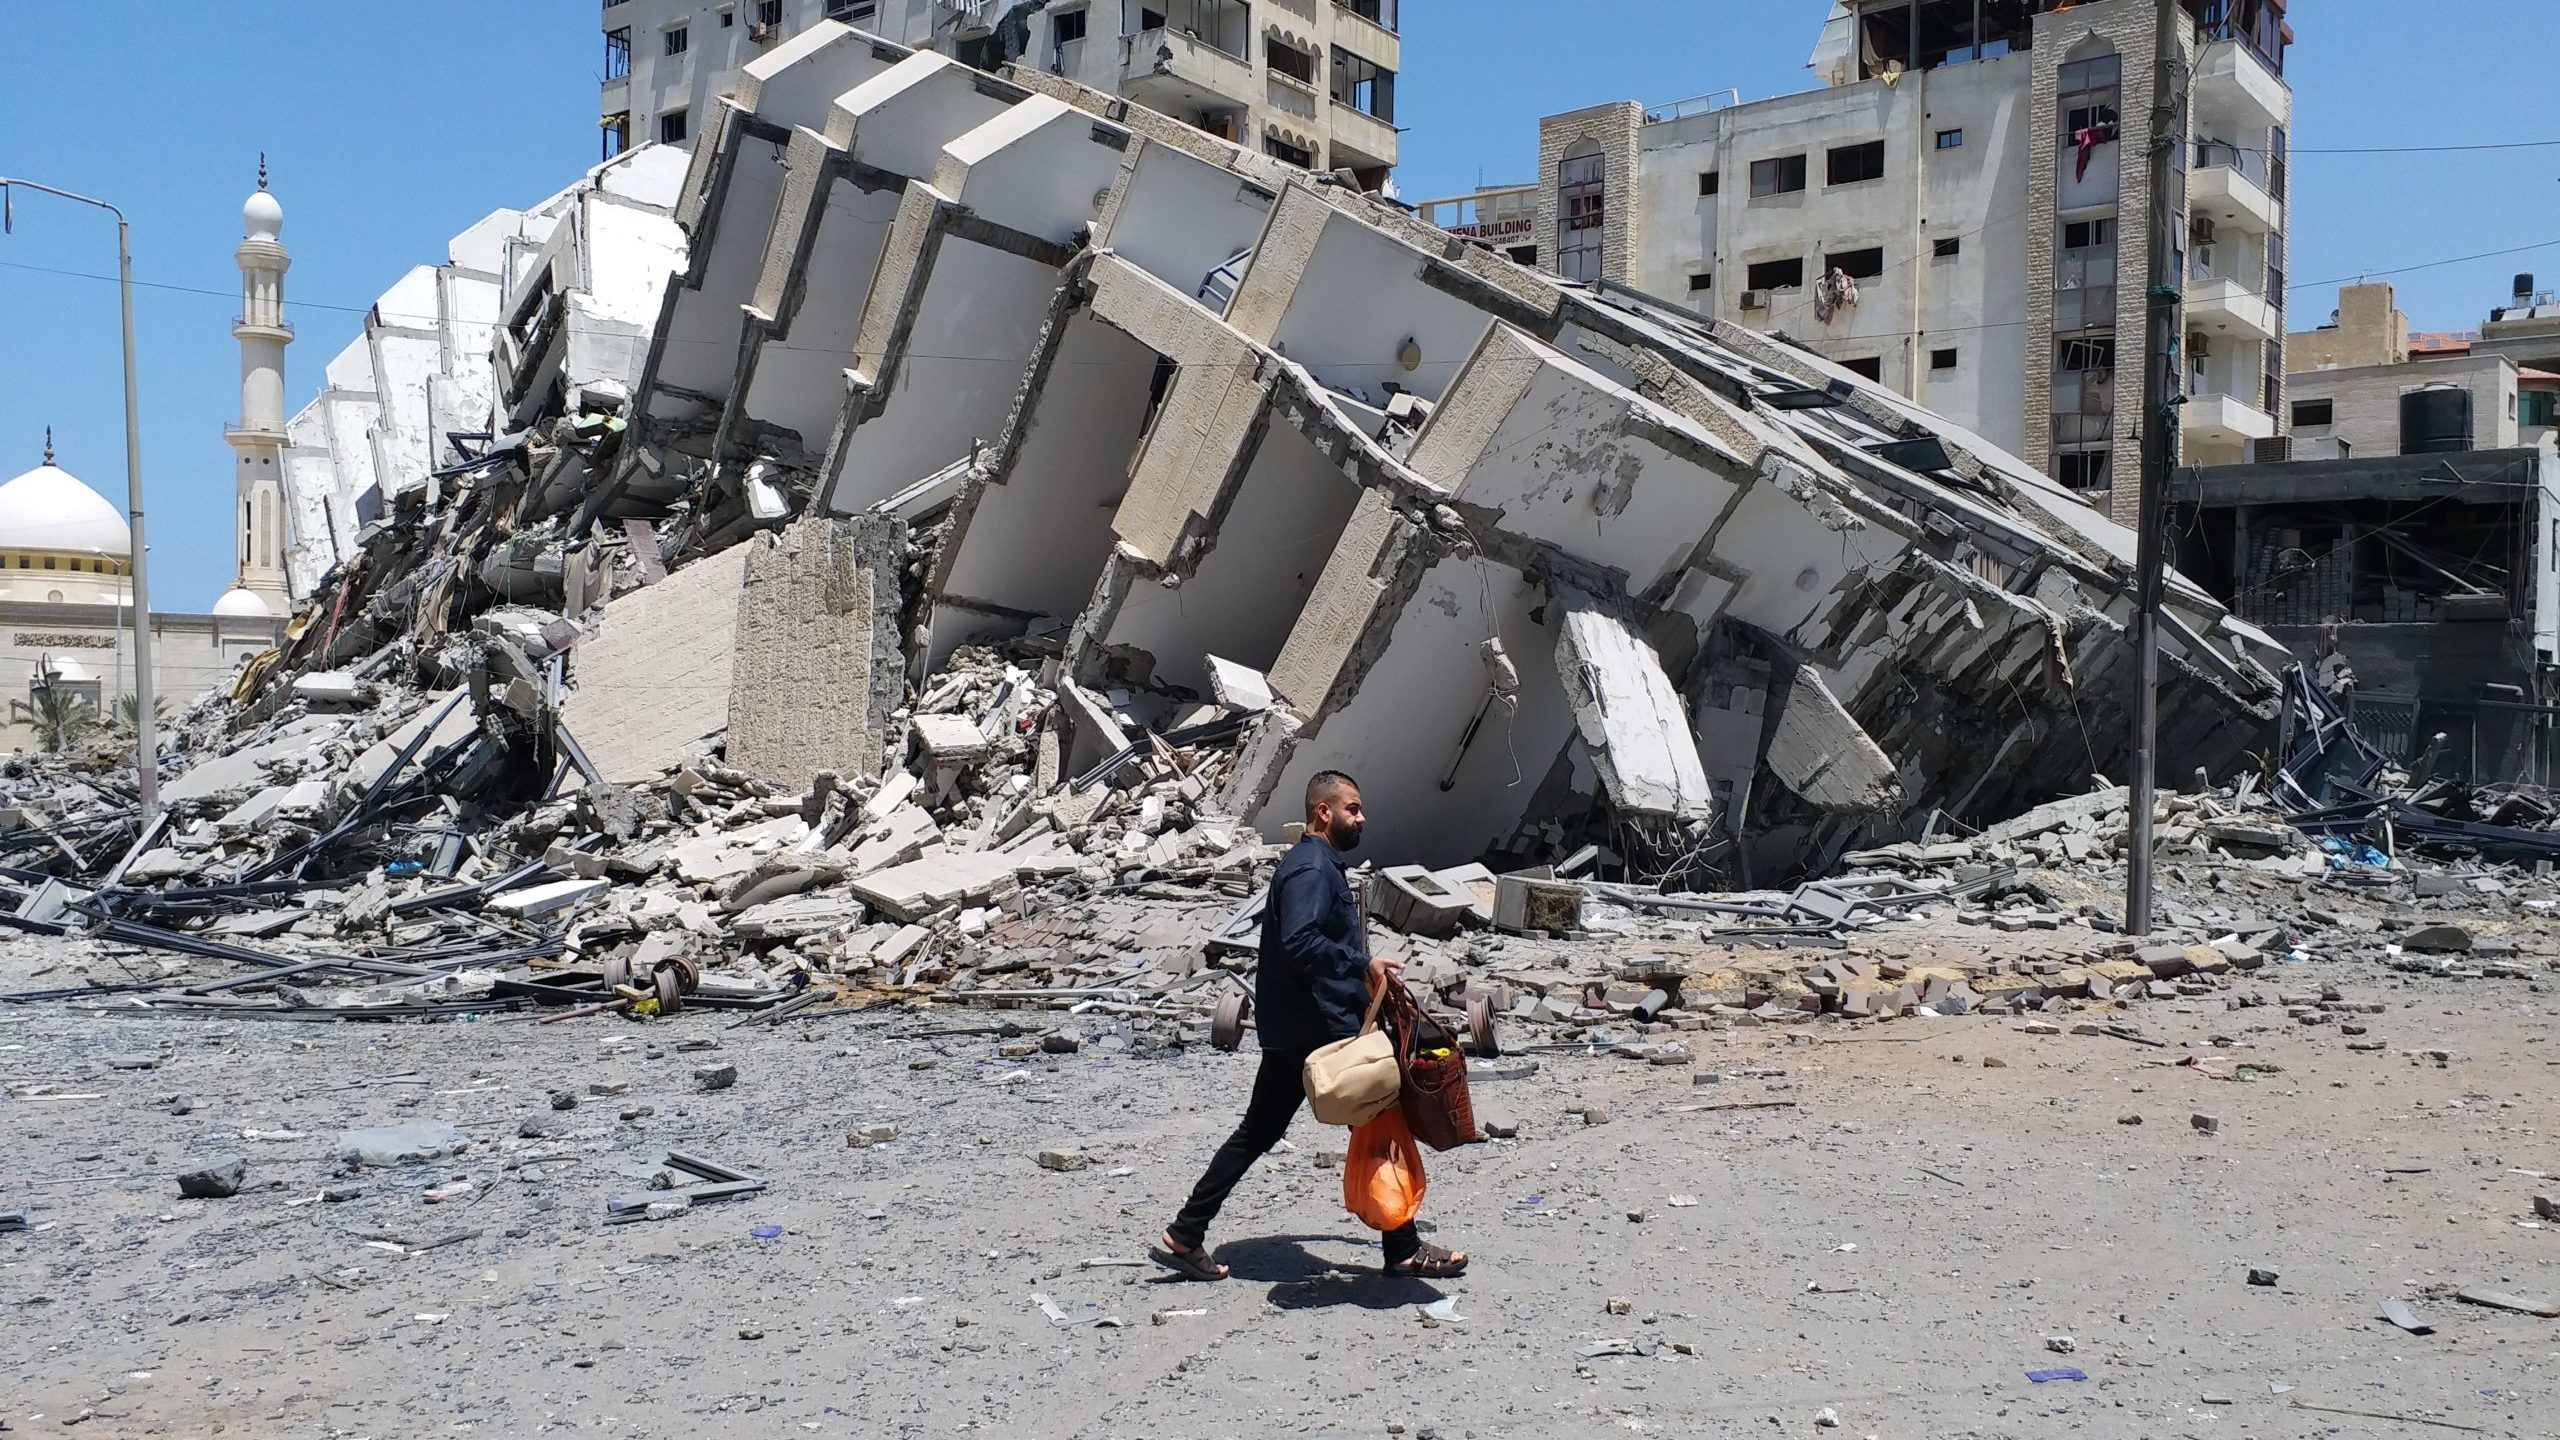 Officials Say Israel-Hamas Cease-Fire Could Come Soon